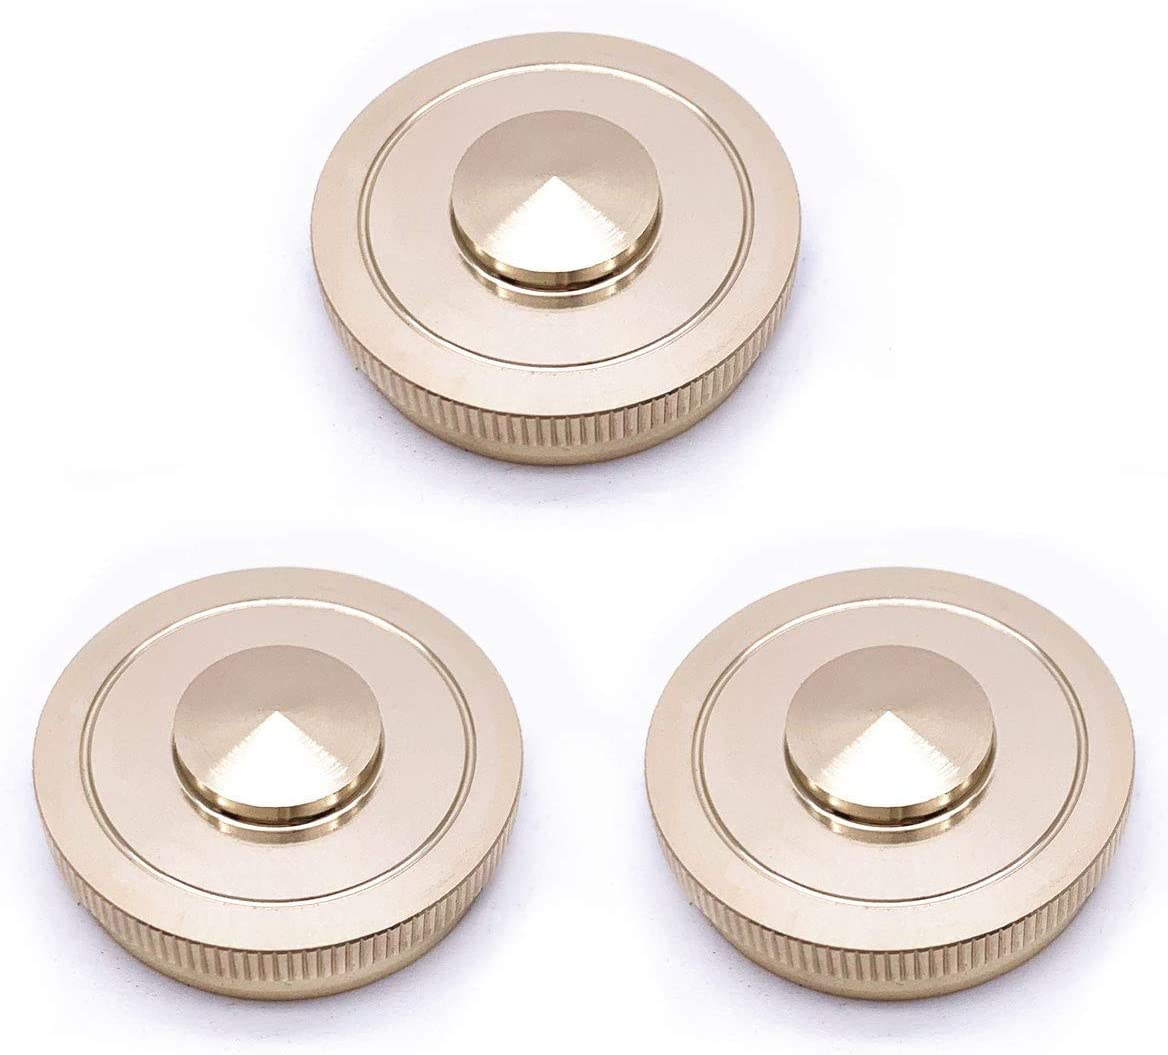 Jiayouy 3Pcs Copper Piston Valve Bottom Cover H Time sale Baritone Cap low-pricing for